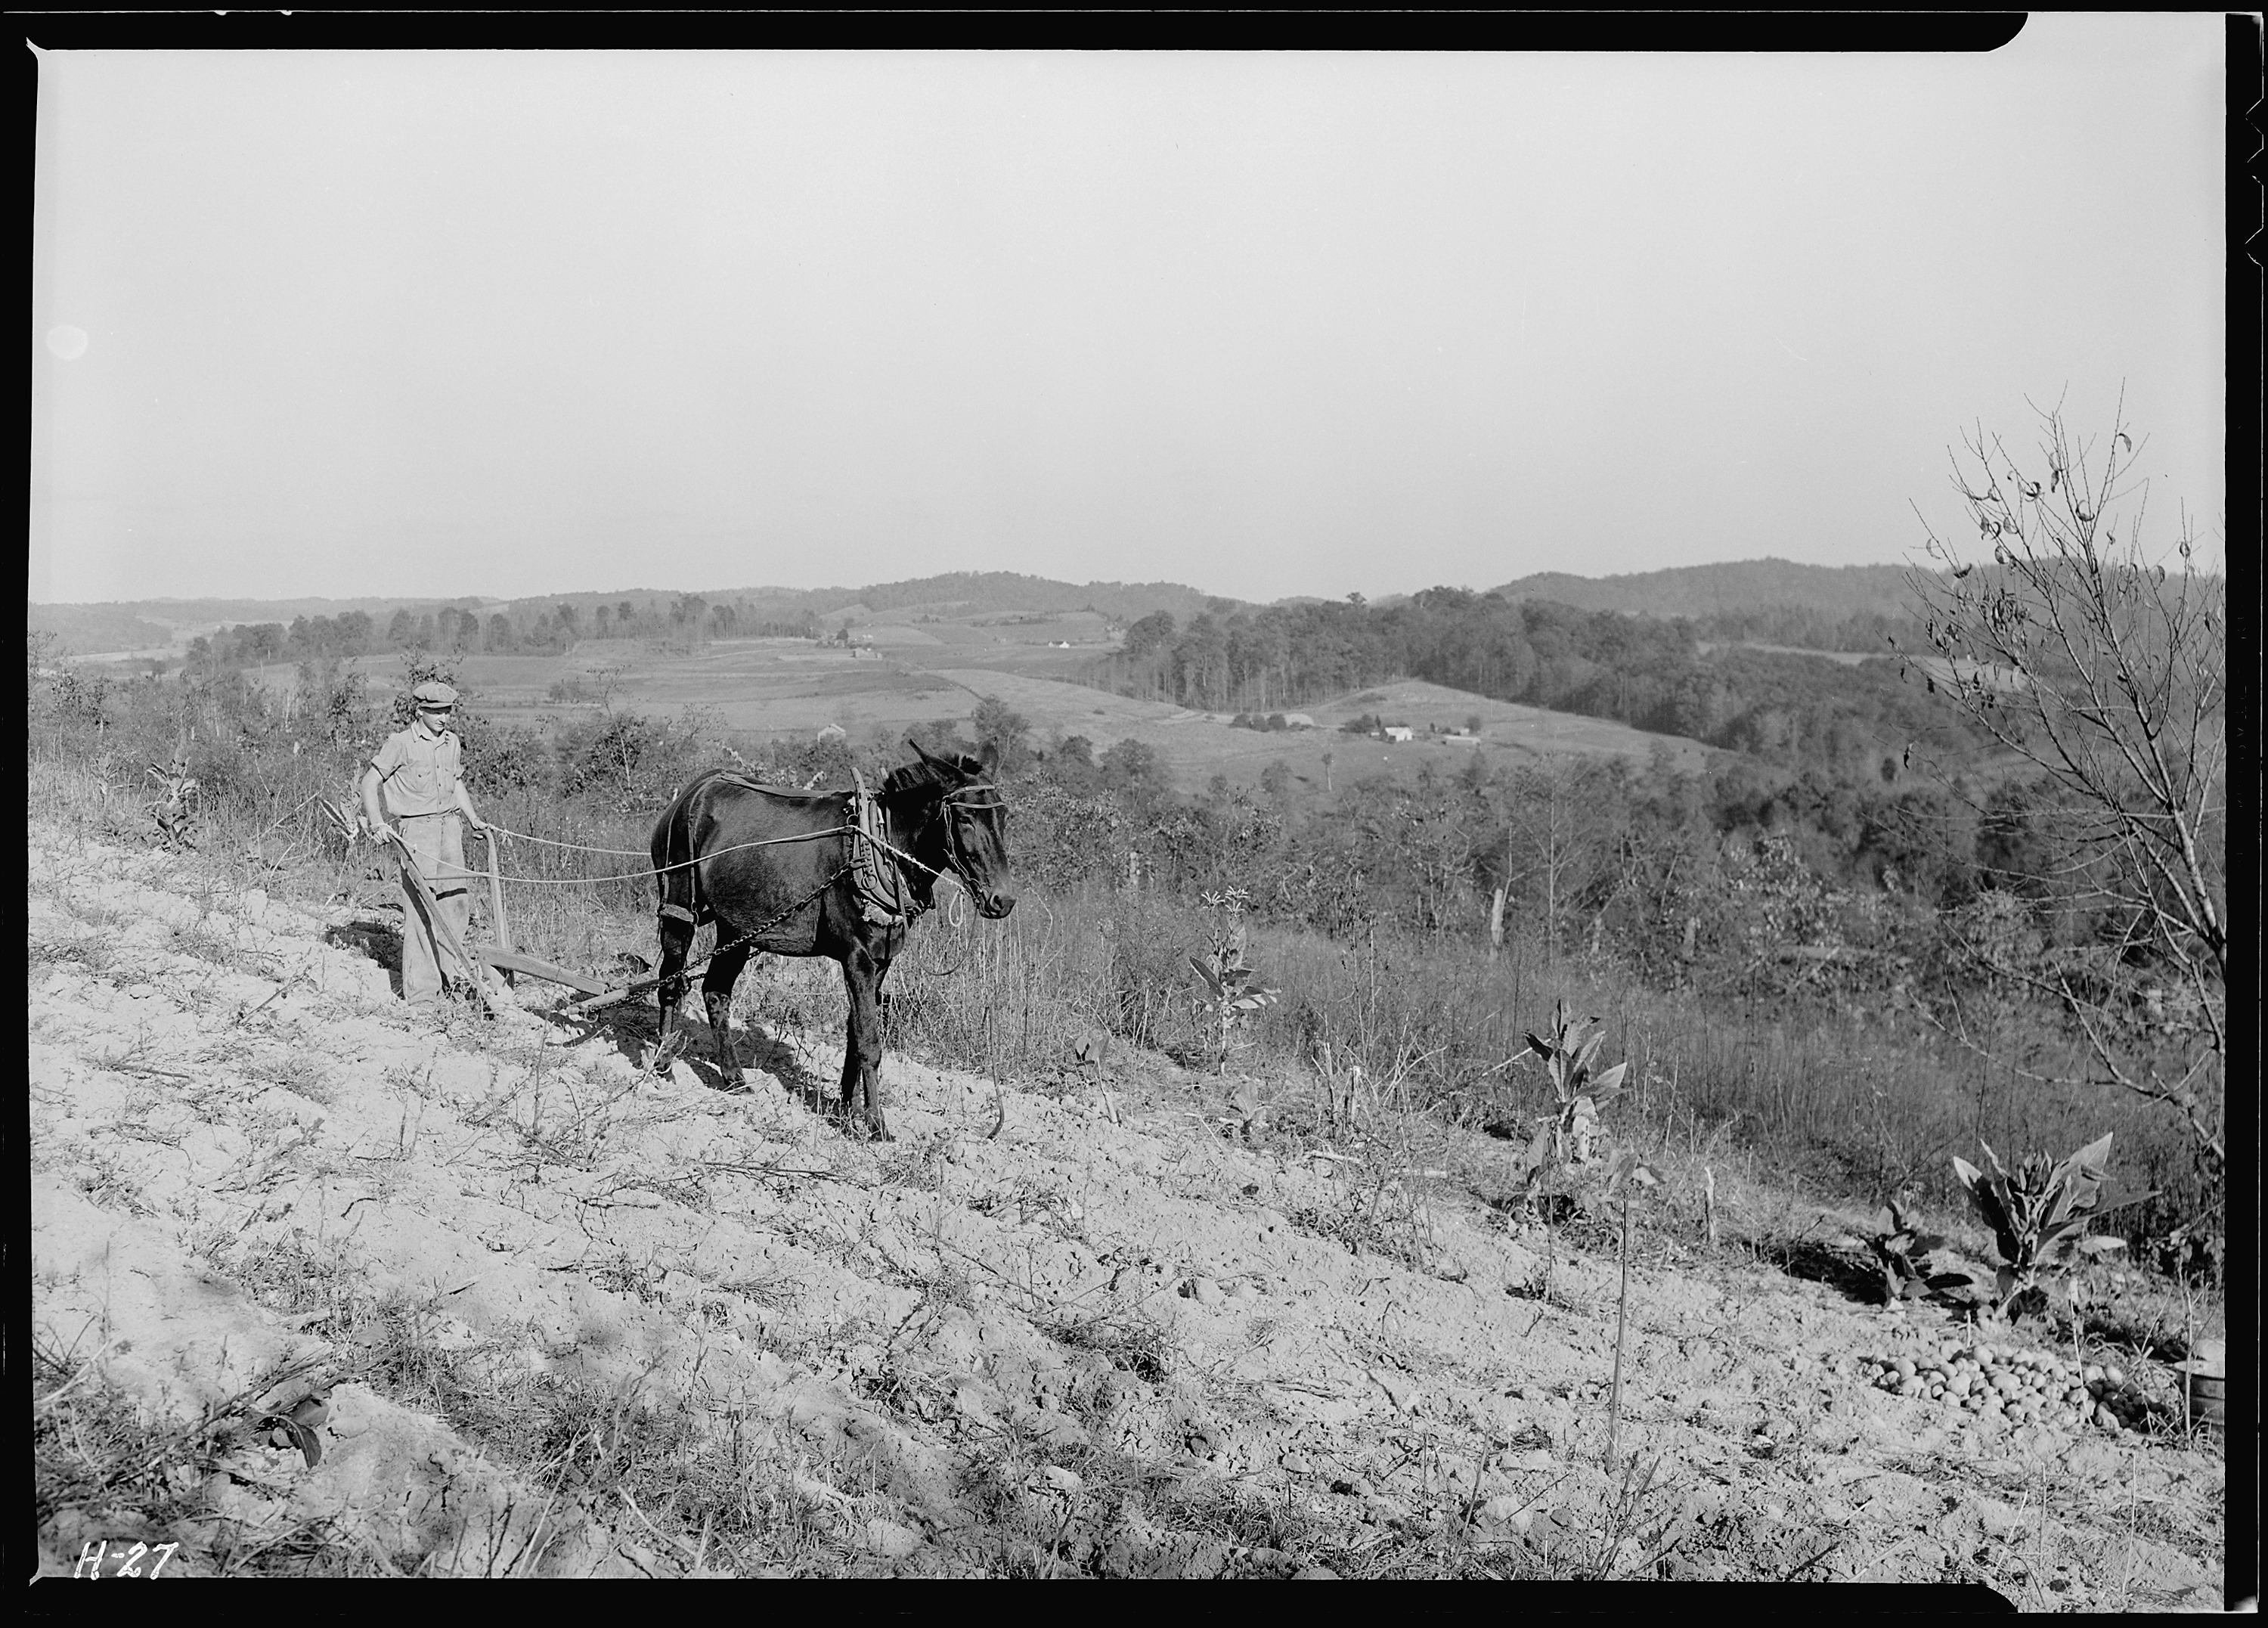 antique photography of a boy with a mule drawn plow on a hillside